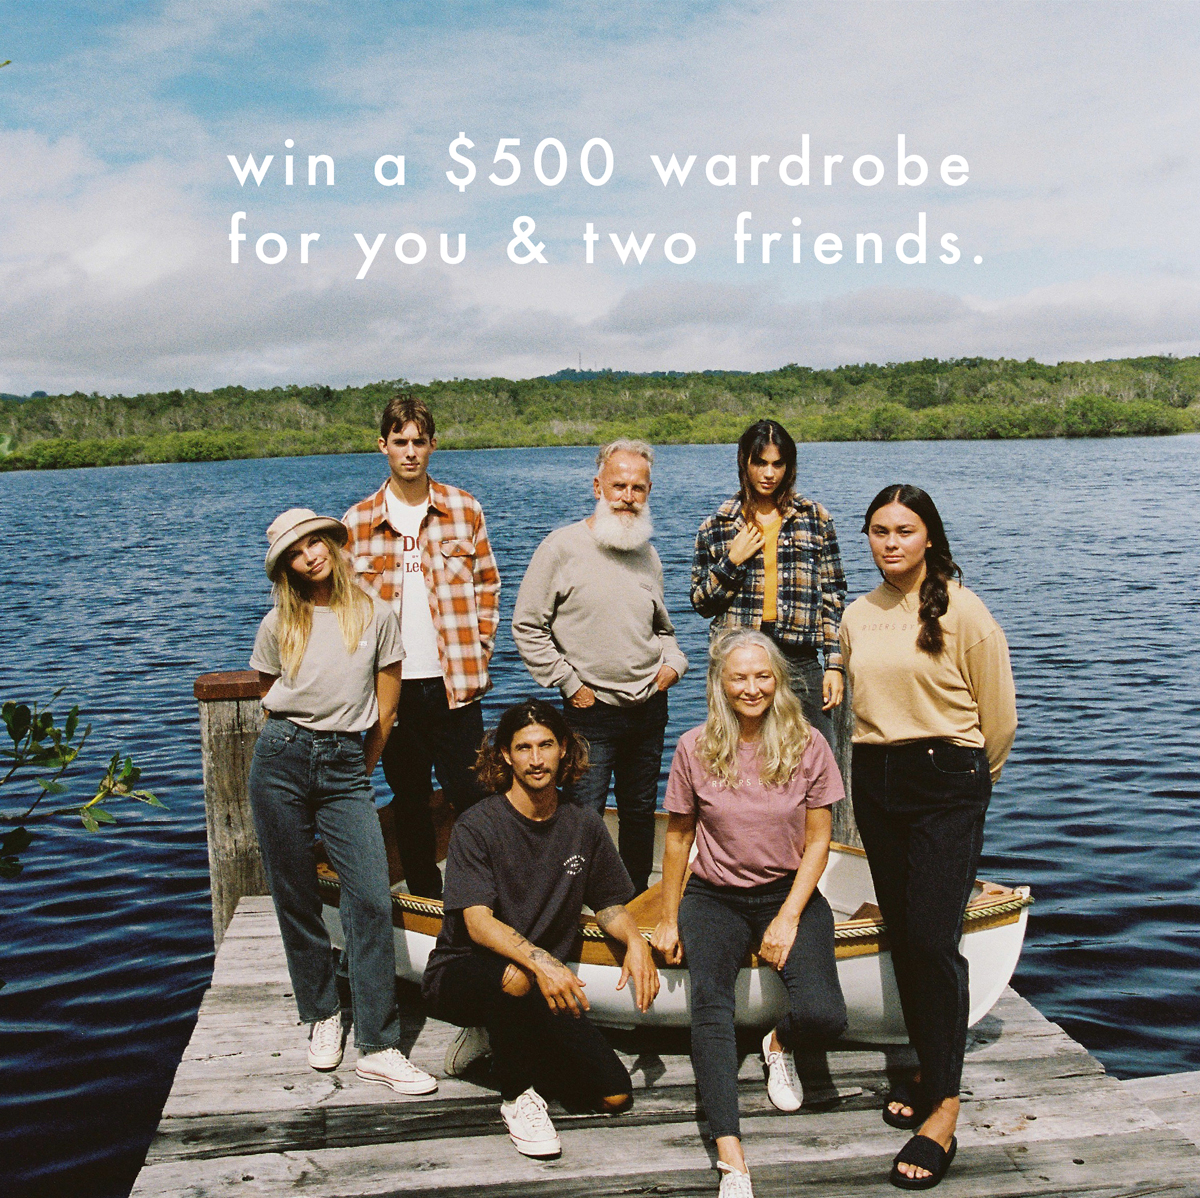 WIN A $500 RIDERS WARDROBE FOR YOU & TWO FRIENDS!